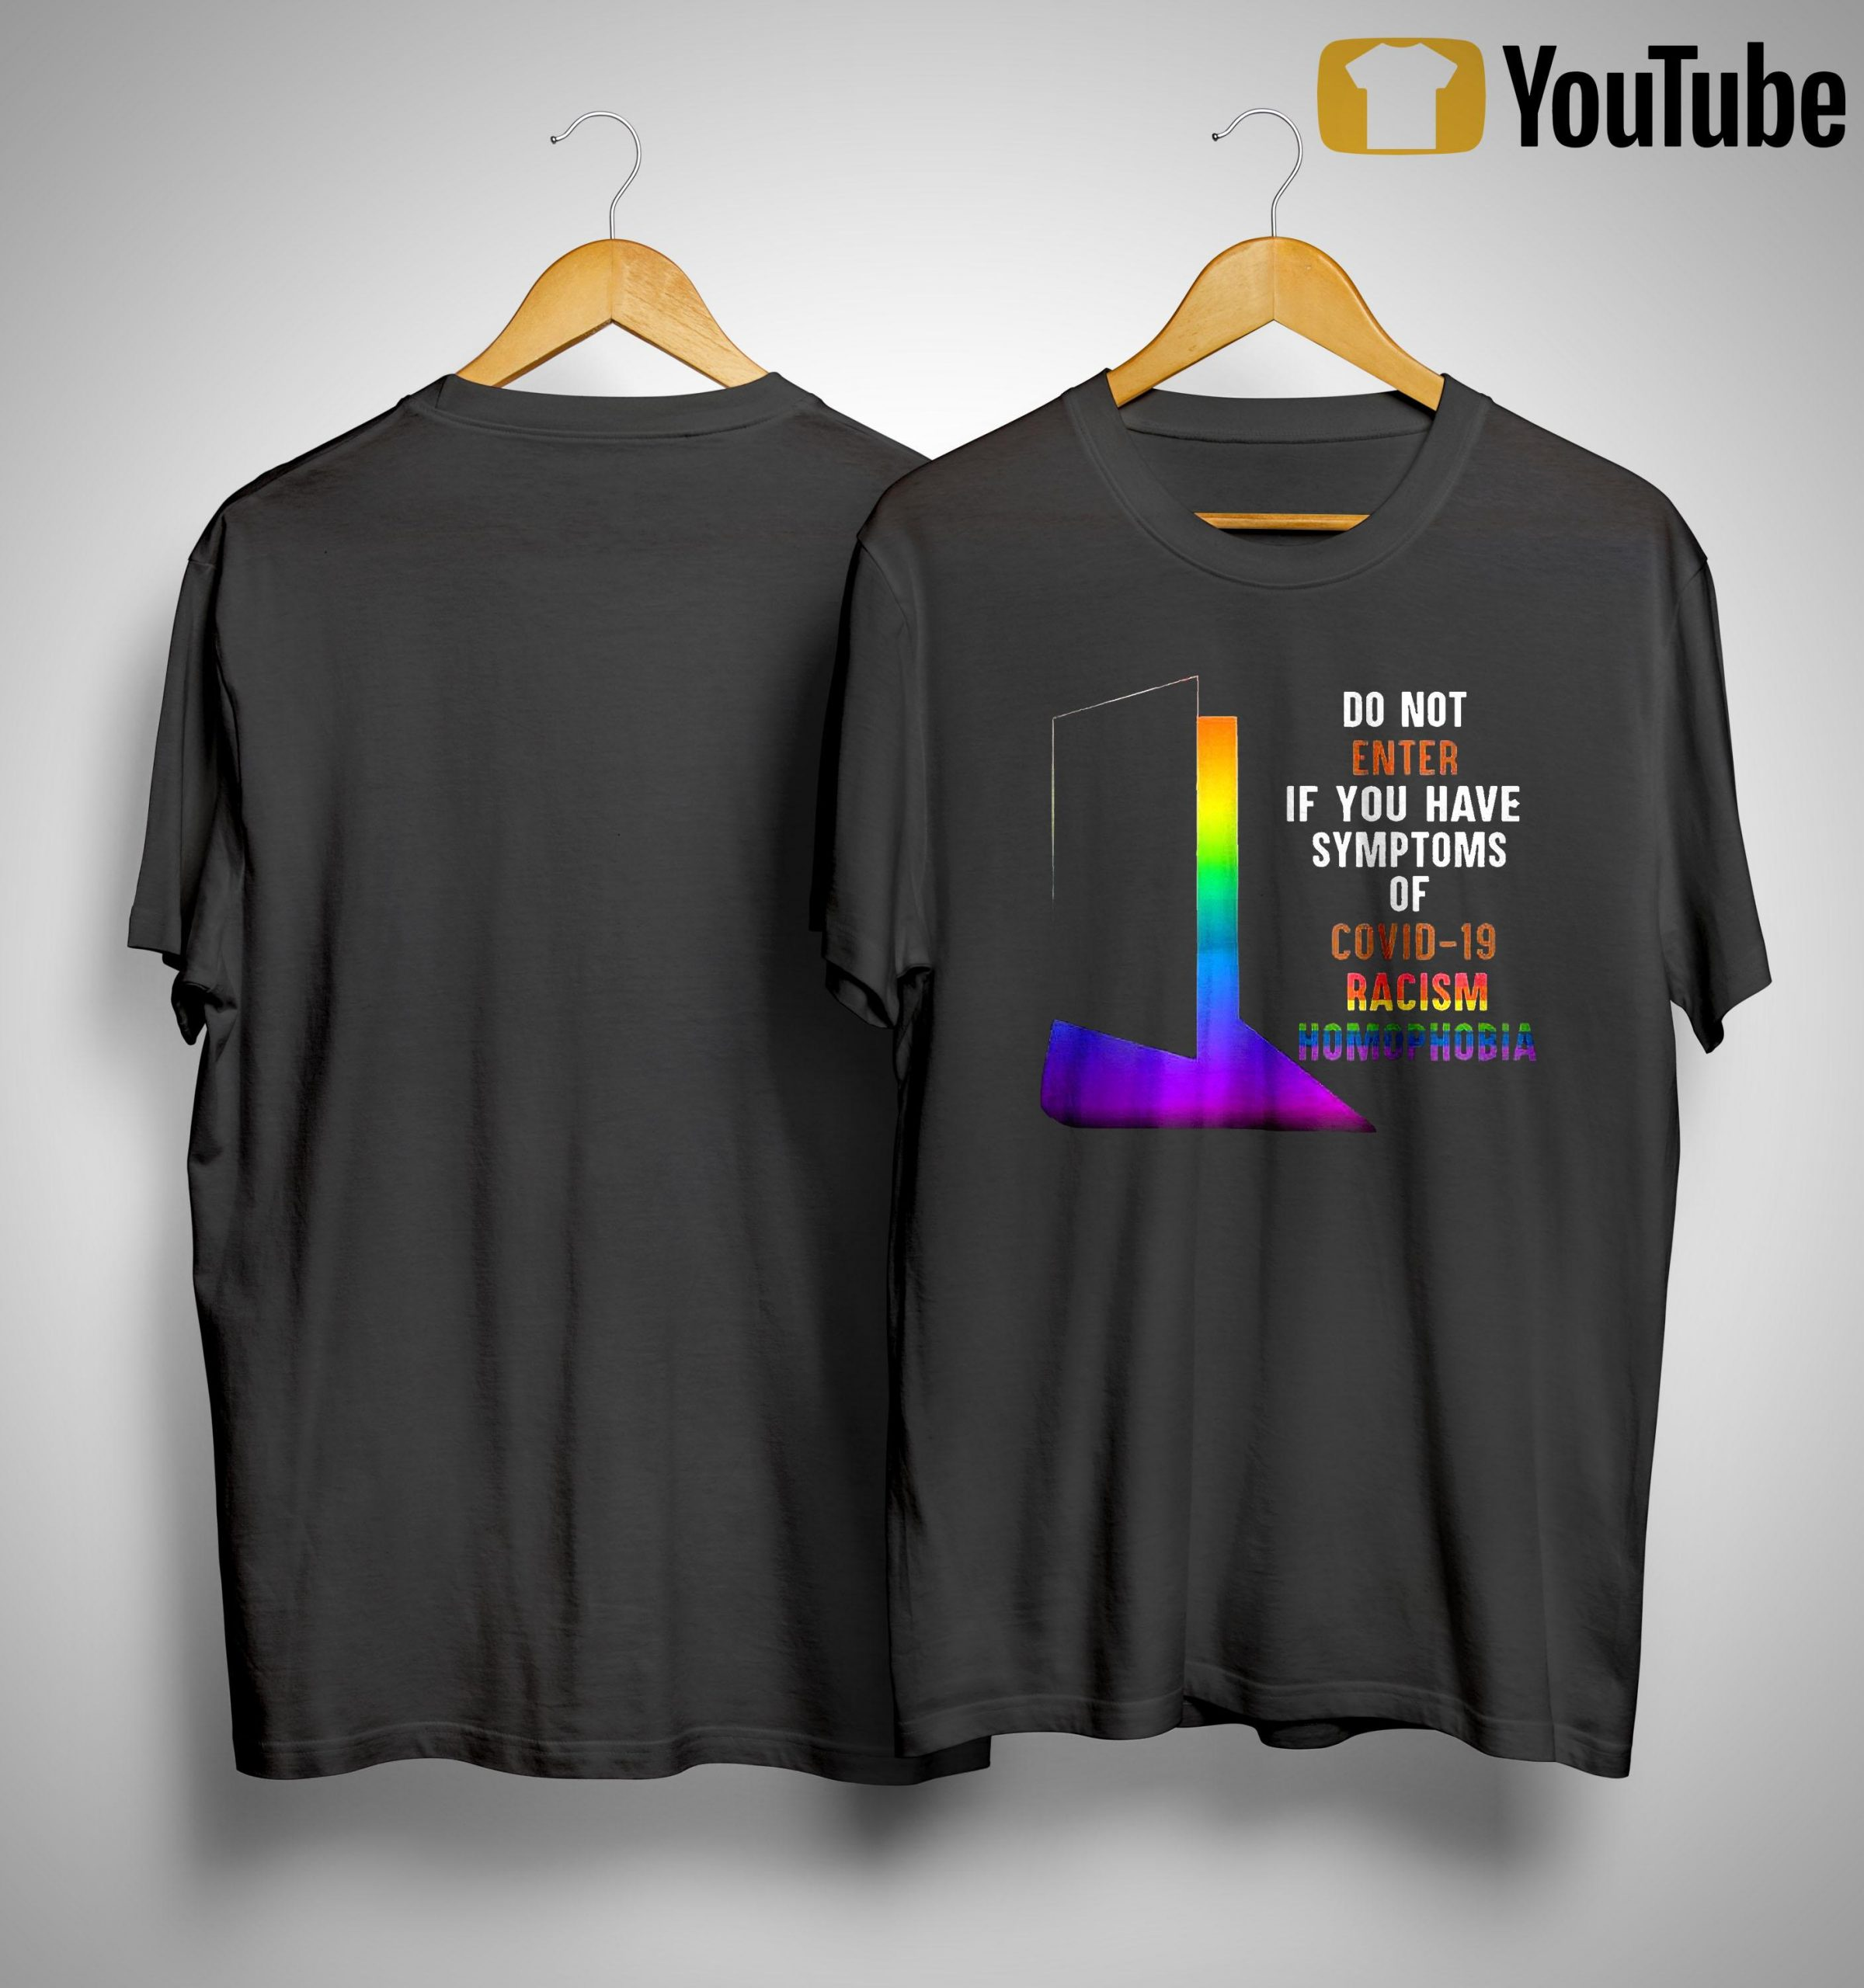 Do Not Enter If You Have Symptoms Of Covid 19 Racism Homophobia Shirt